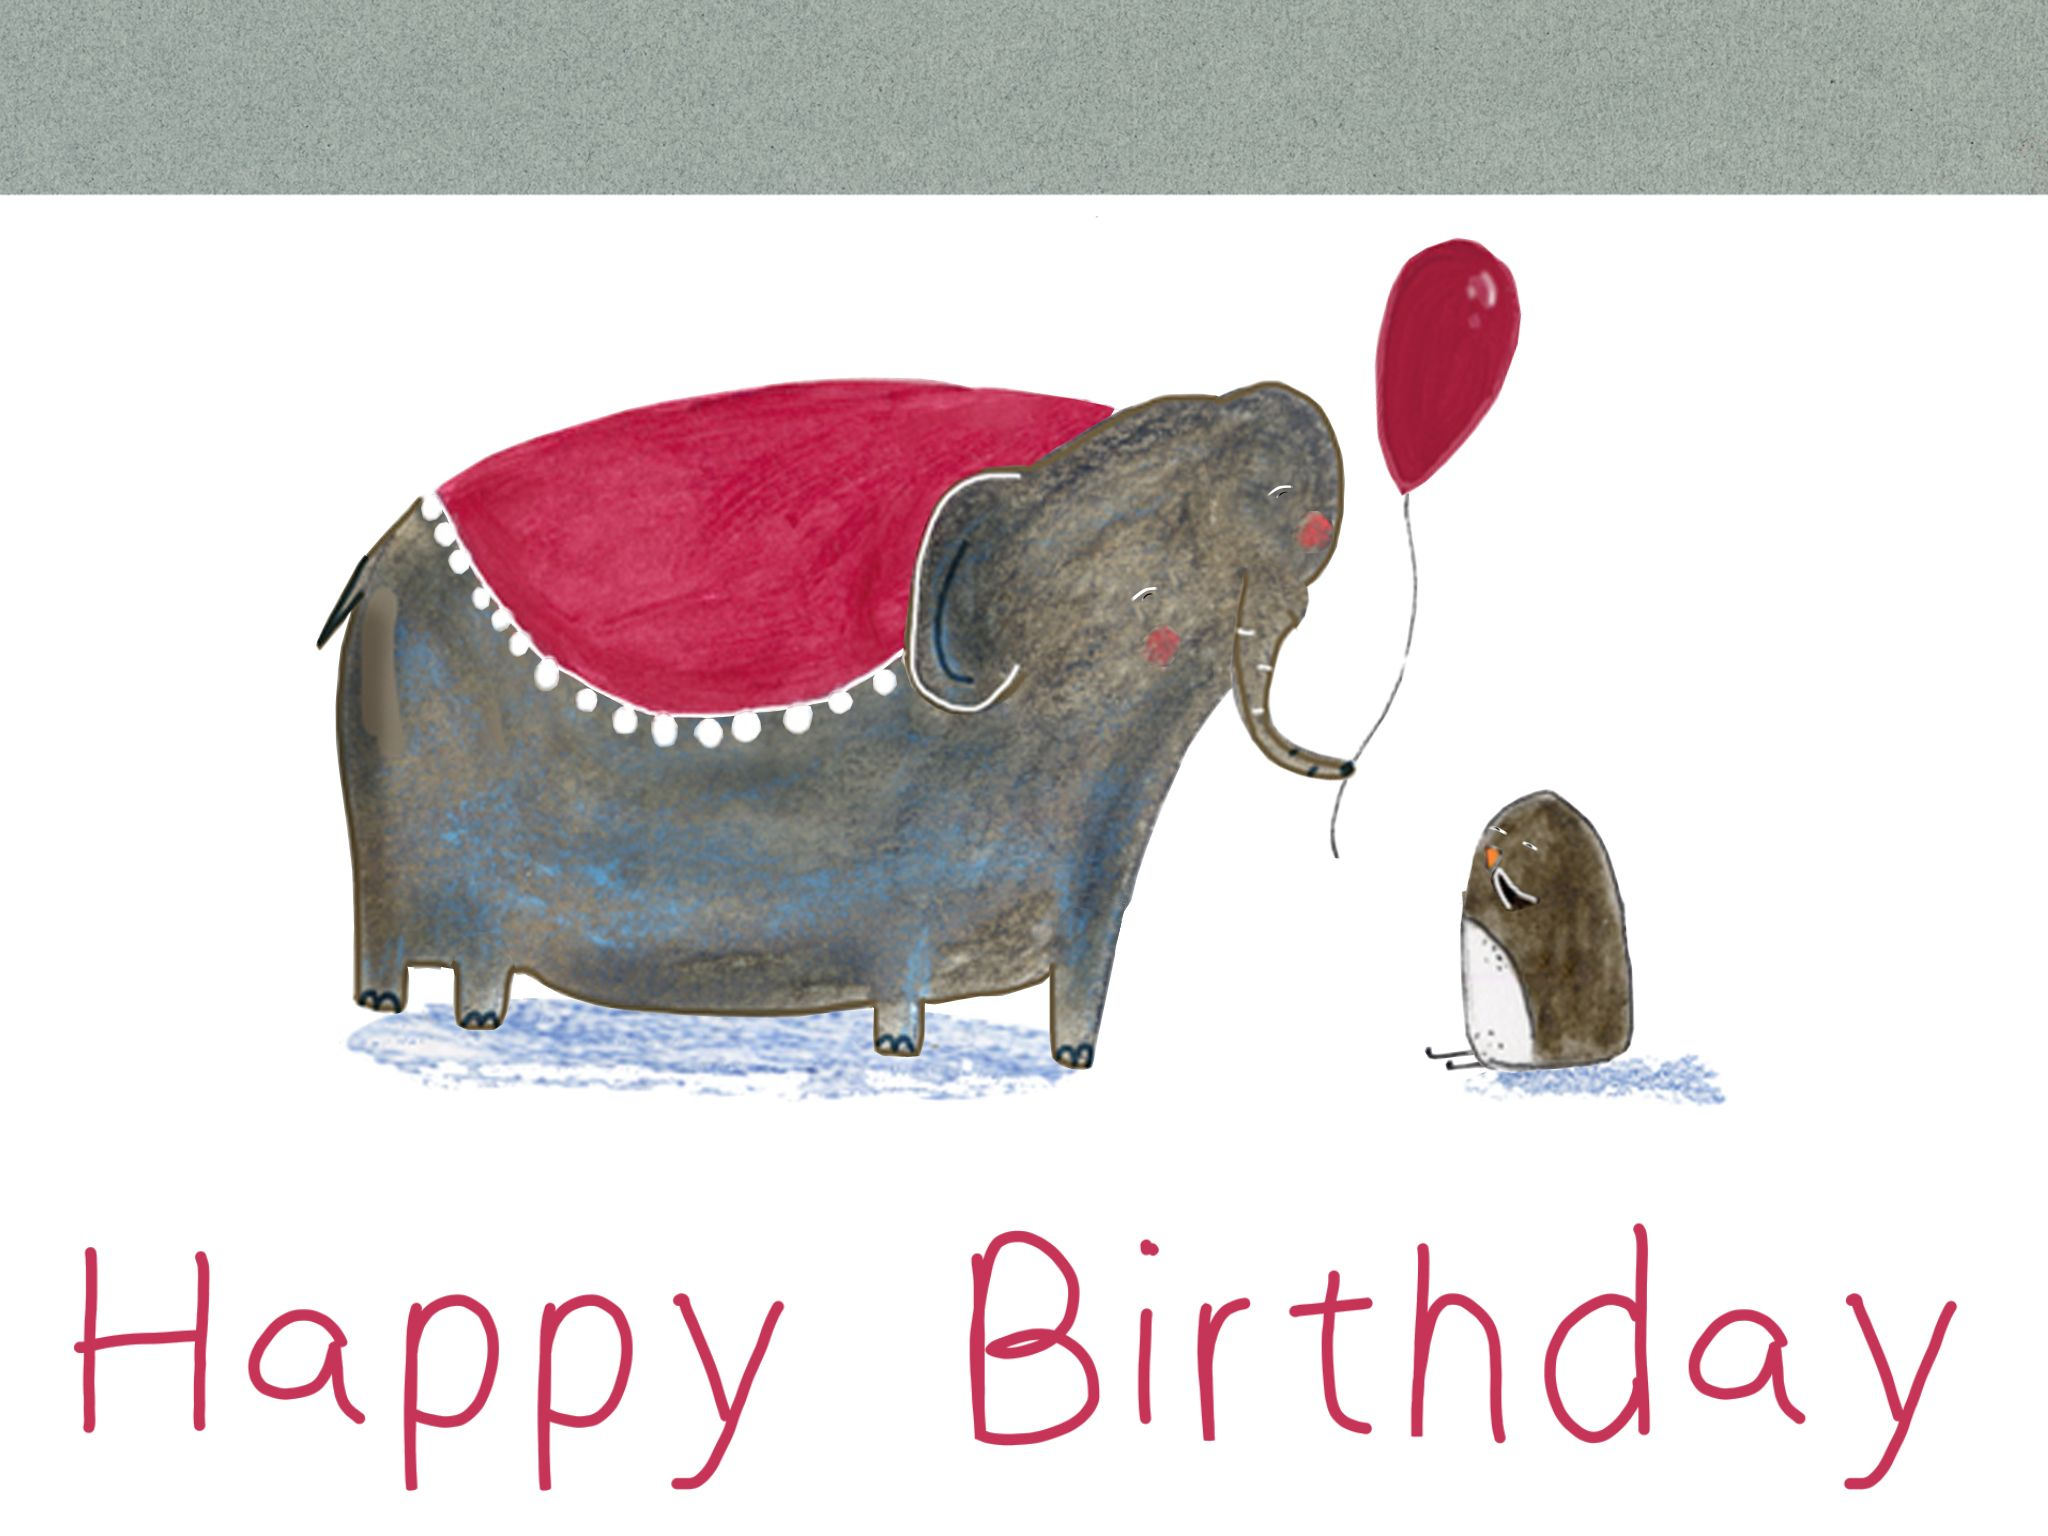 Animated Birthday Cards On The Free Jeego Ecards App Jeegome Greetingscards Happy Apple Android Windows